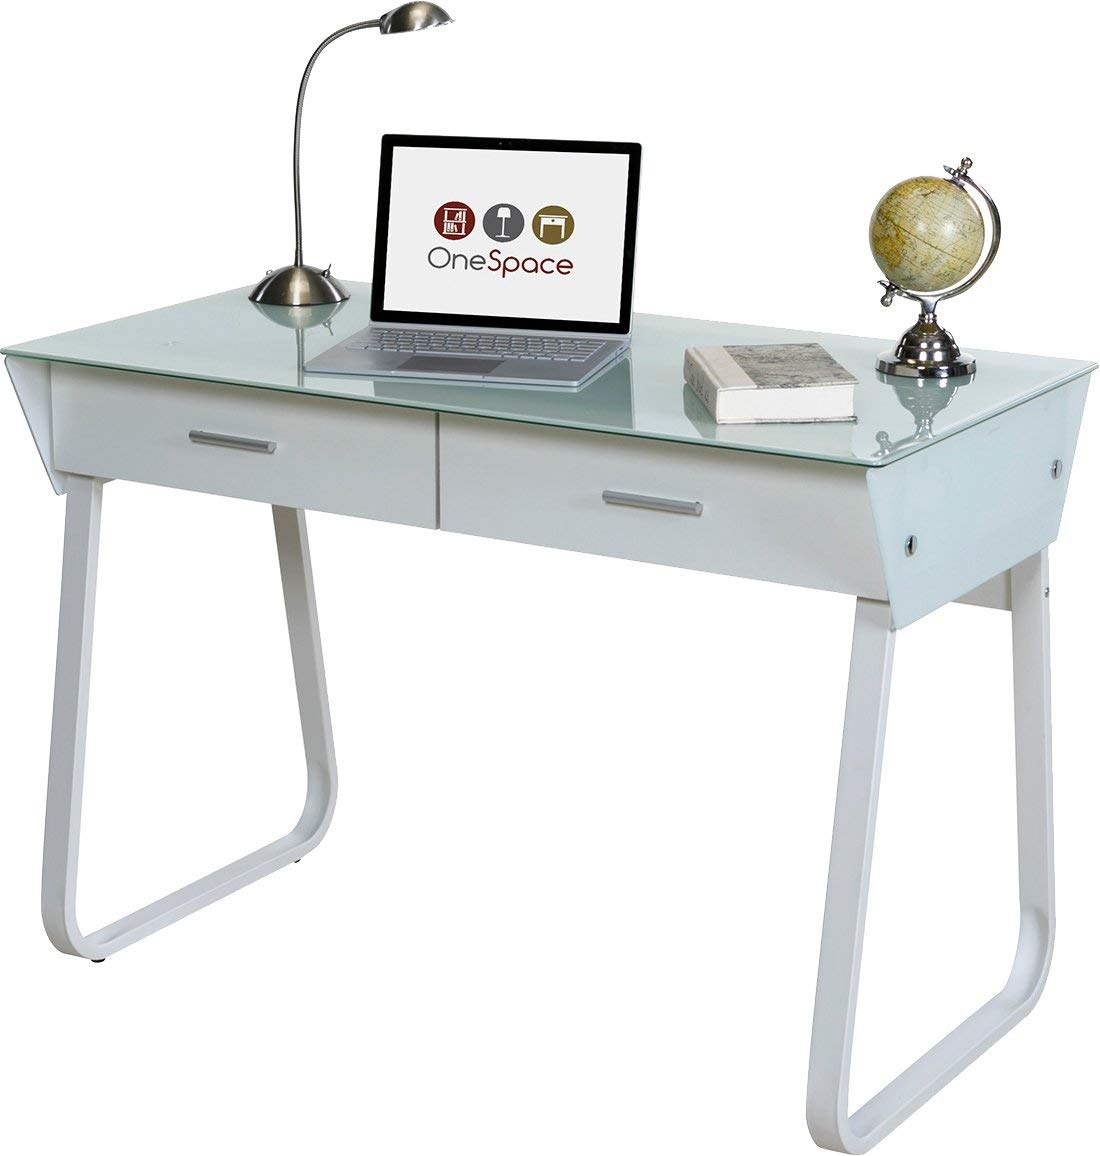 amazon.com: onespace ultra-modern computer table made of glass with drawers, white: kitchen & BOUSHOV